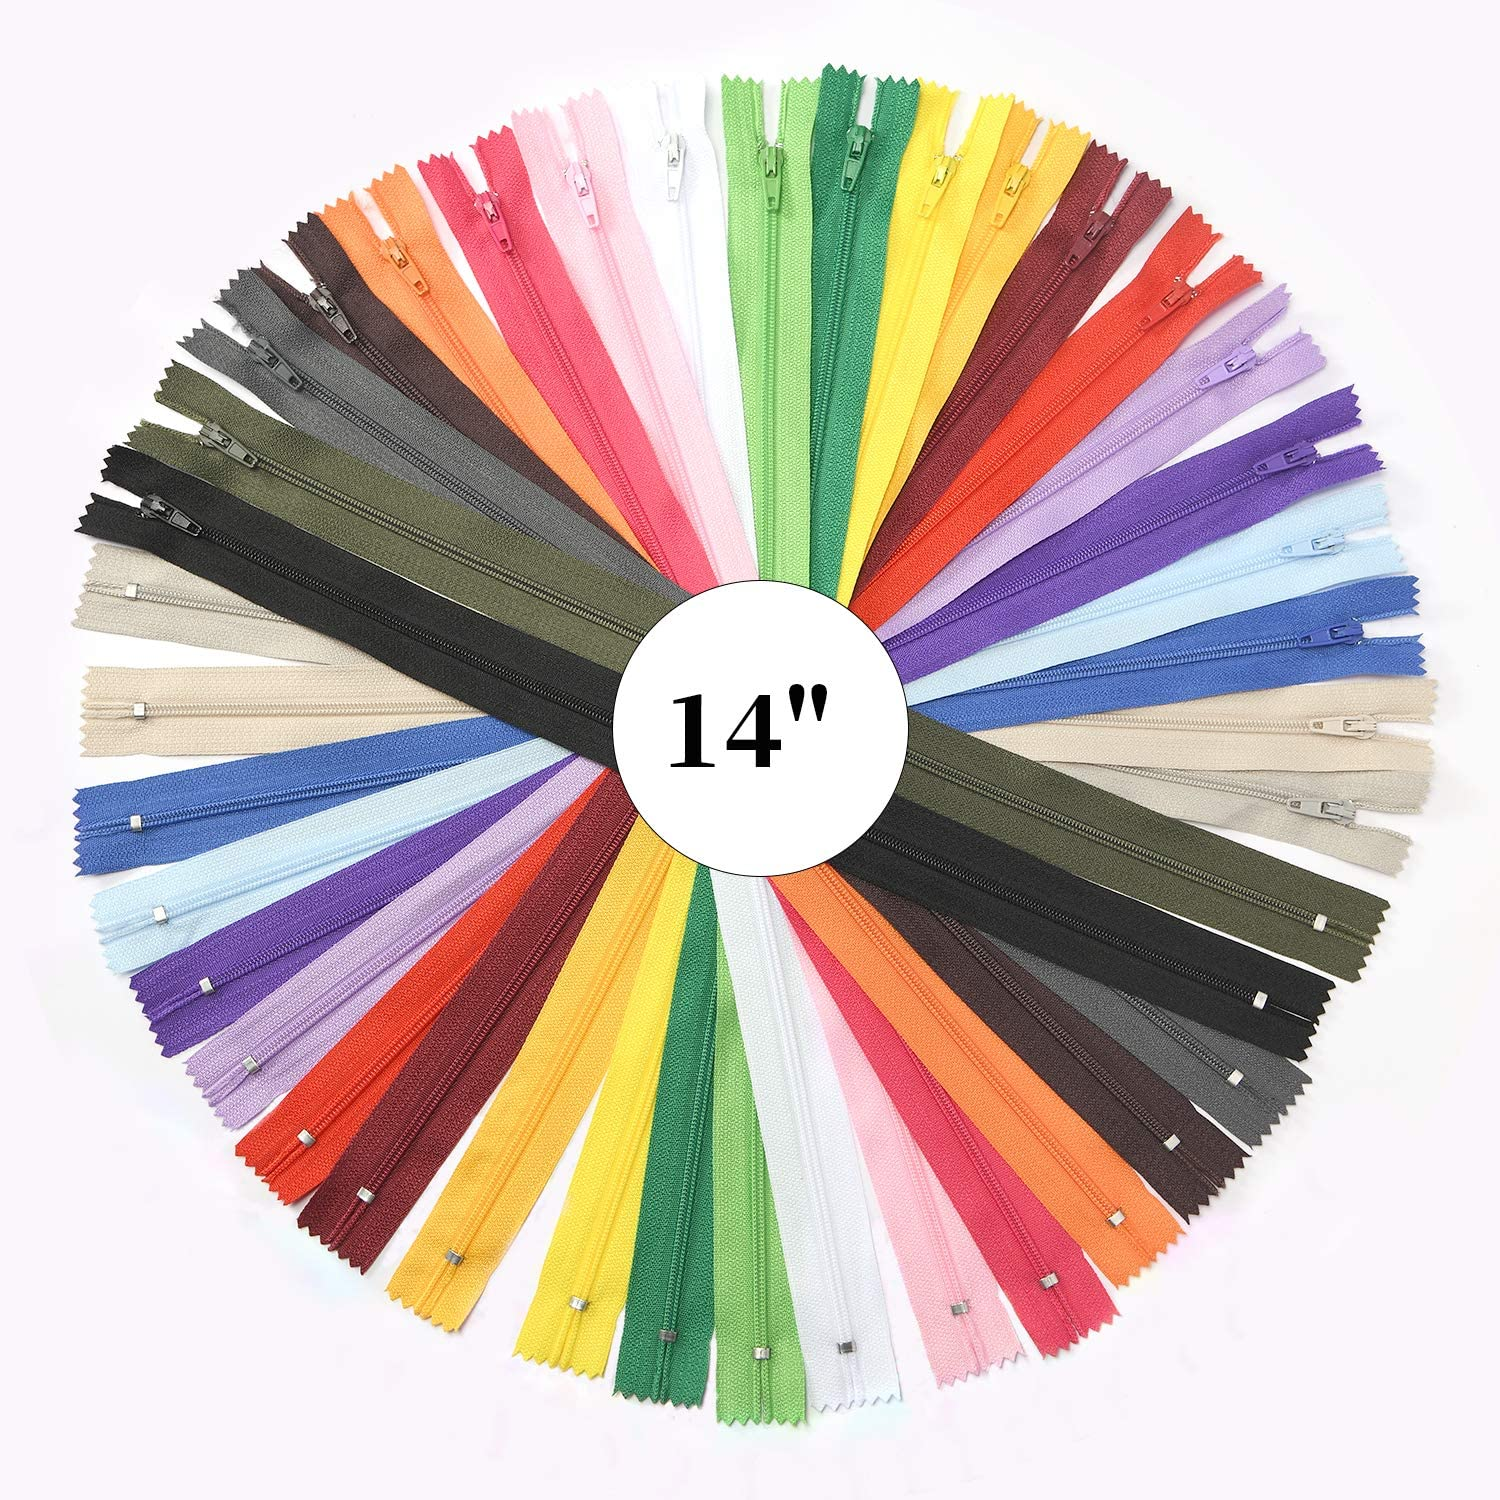 60pcs Nylon Coil Zippers 20 Assorted Colors 5 Inch Colorful Sewing Zippers Supplies for Tailor Sewing Crafts